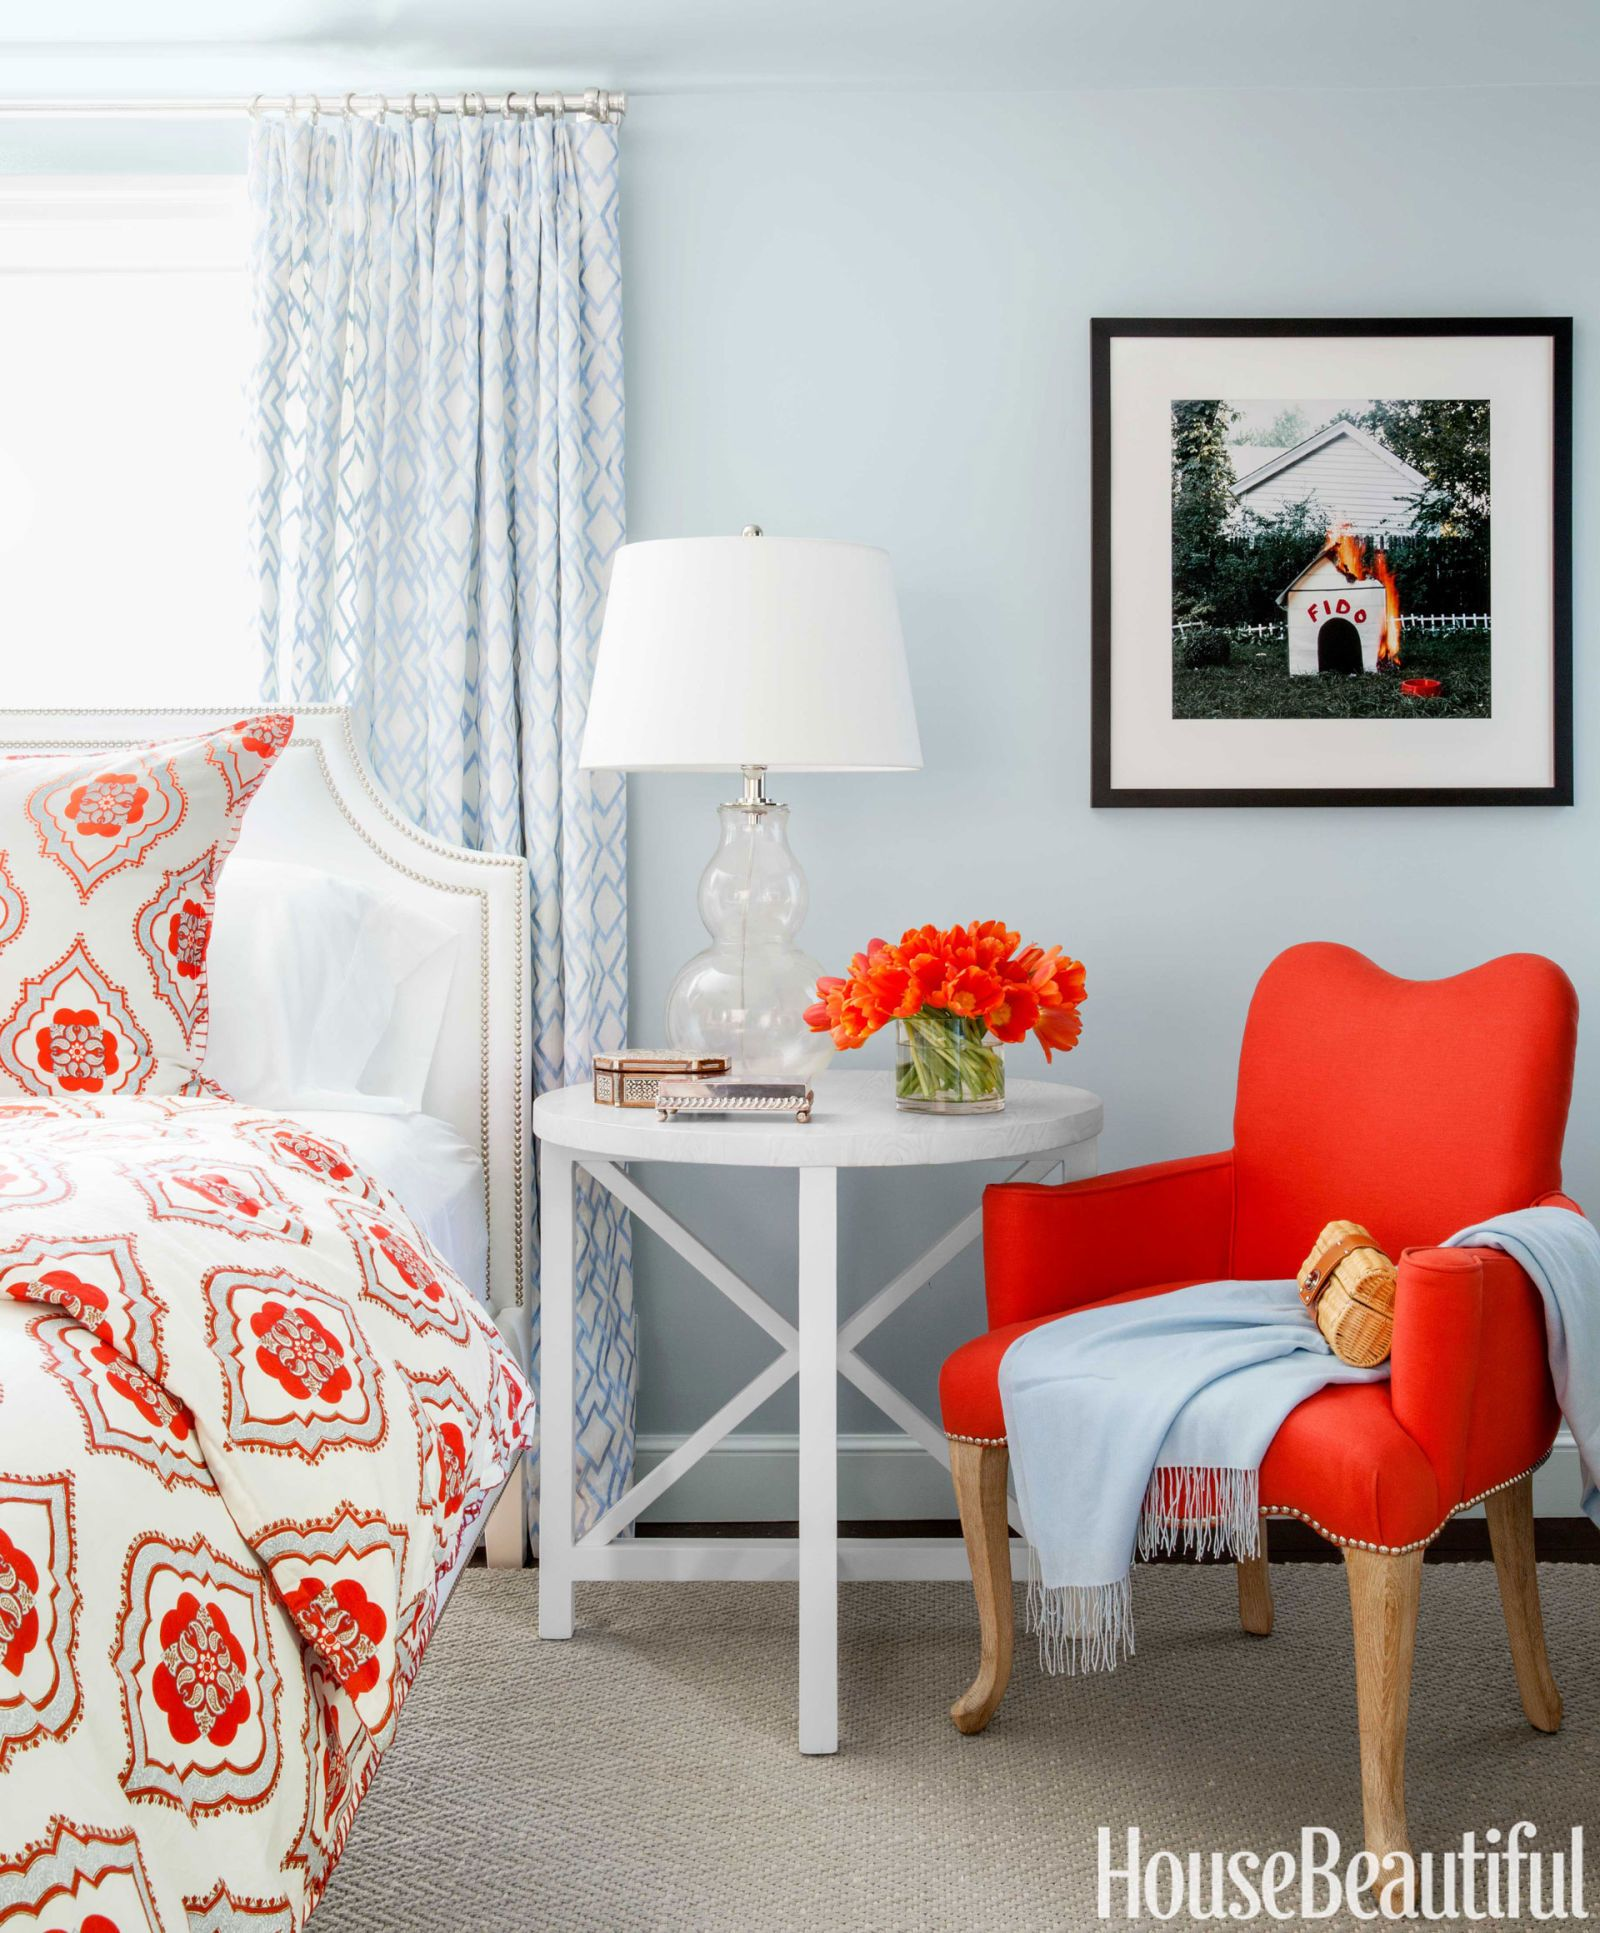 Top Pin of the Day: A Happy and Colorful Bedroom